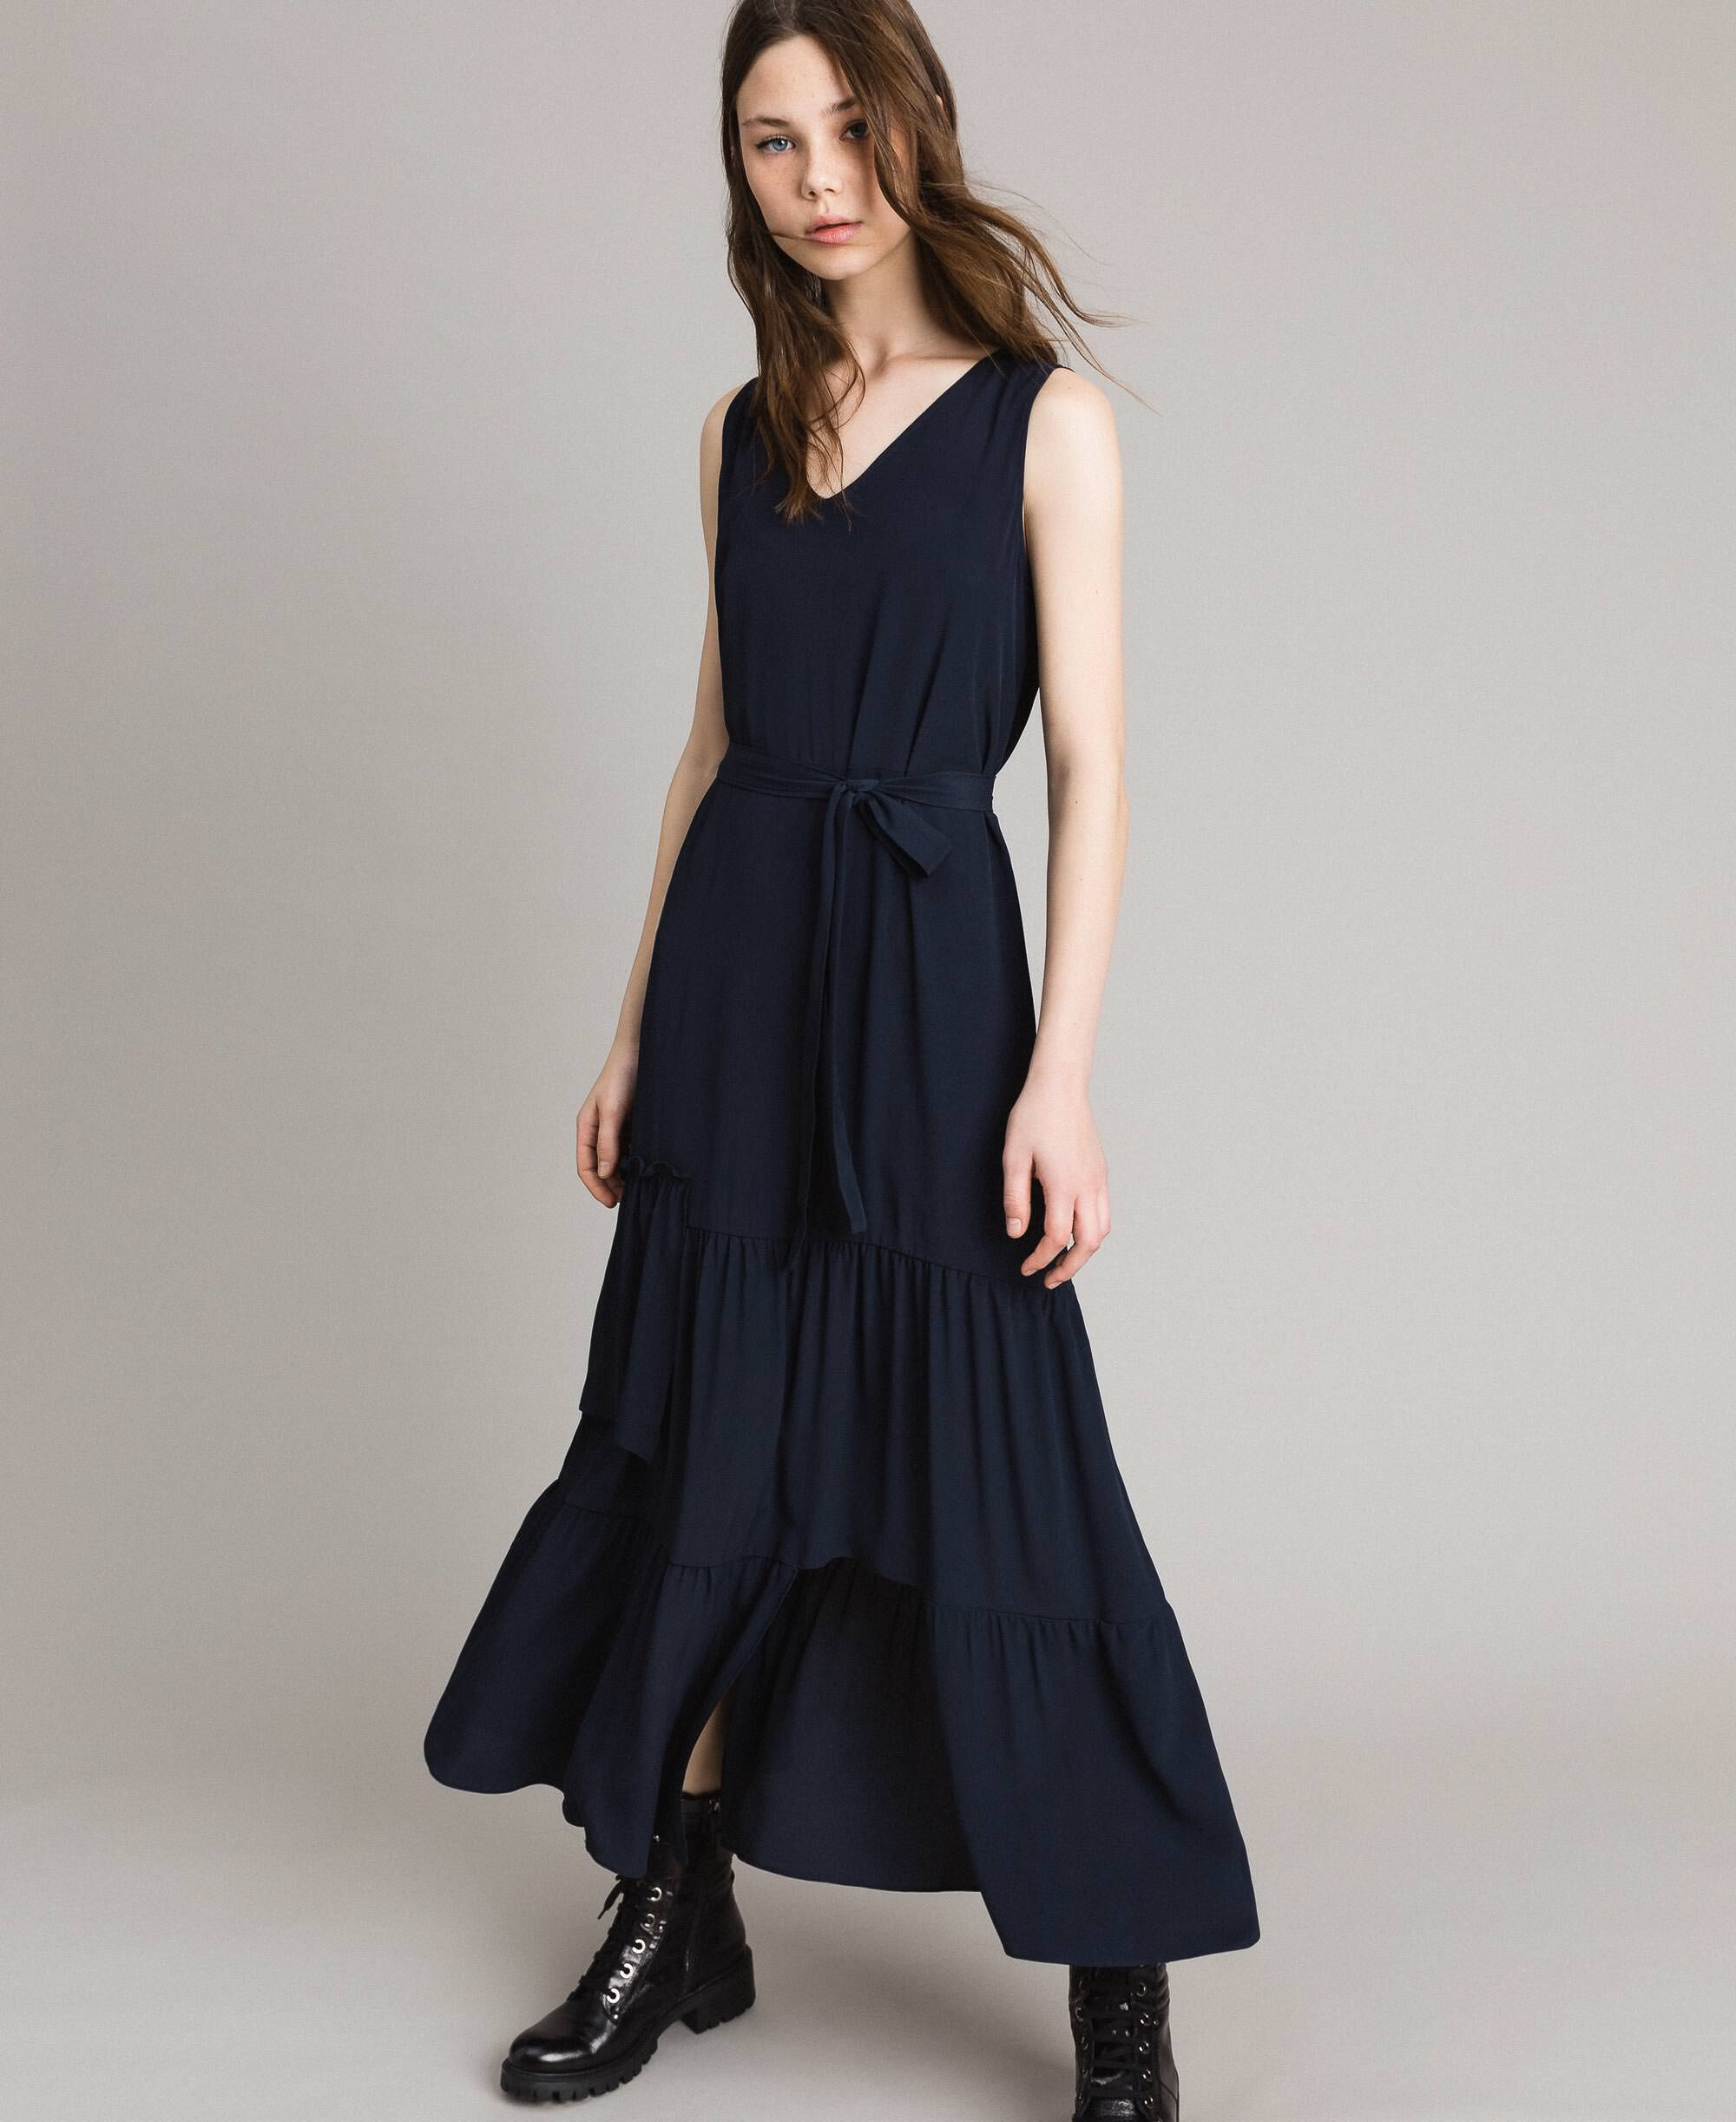 sales woman clothing twinset